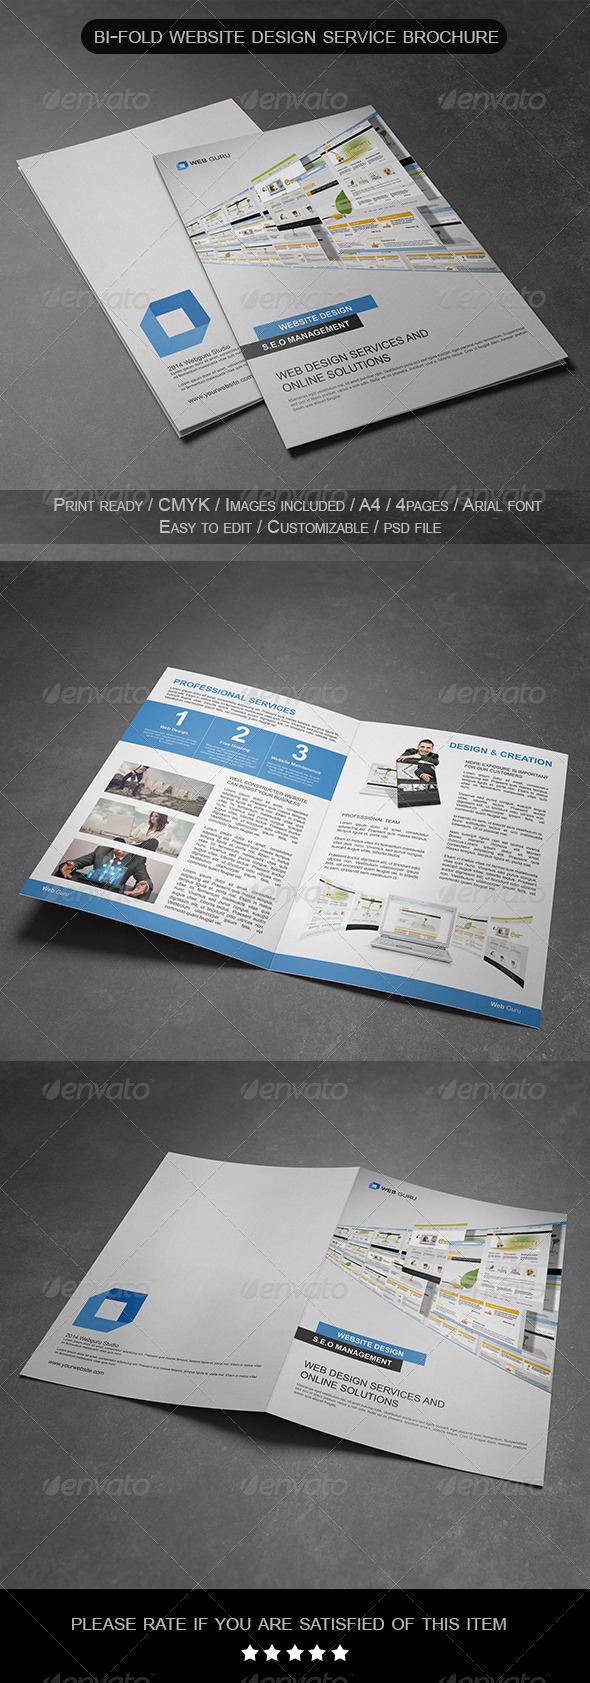 GraphicRiver Bi-Fold Website Design Service Brochure 7273573